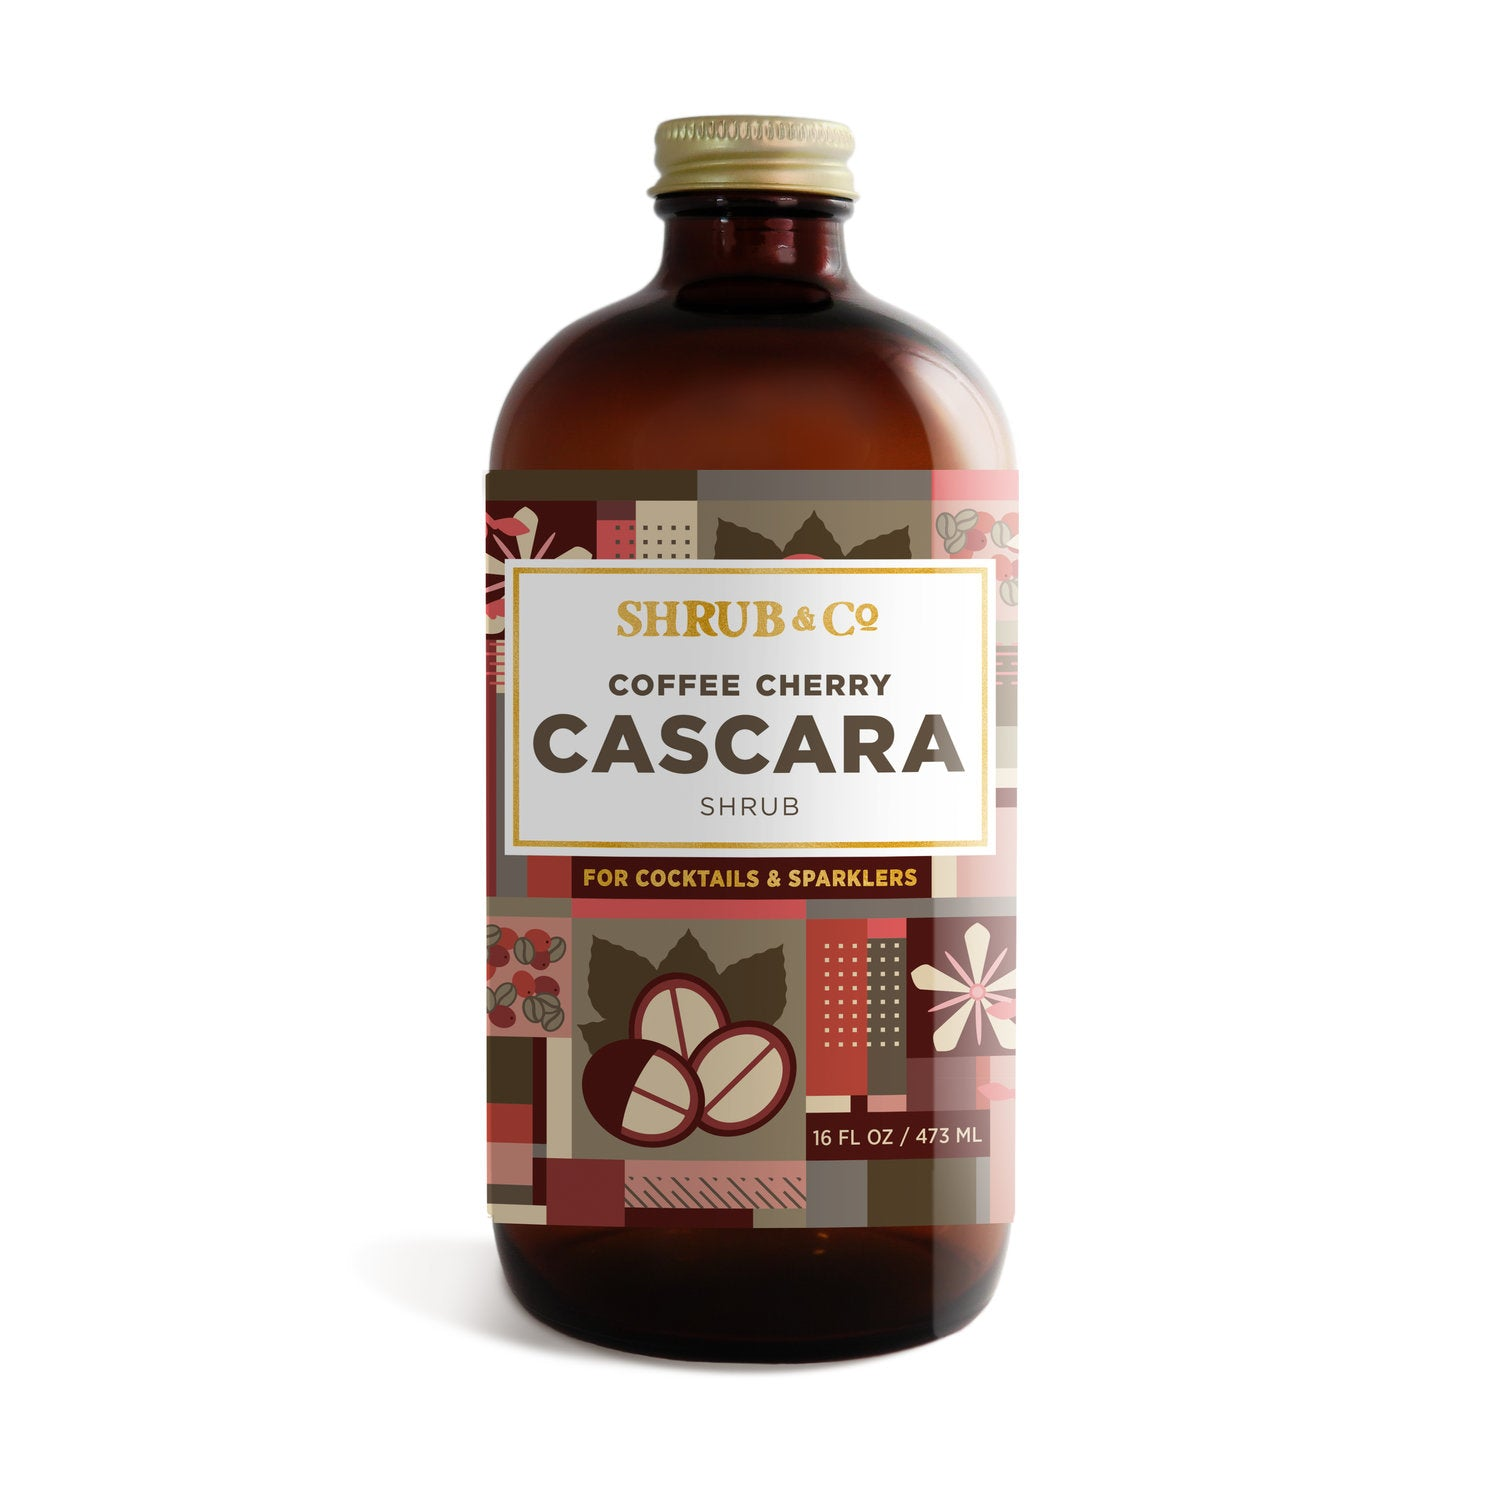 Shrub & Co Coffee Cherry Cascara Shrub 16oz